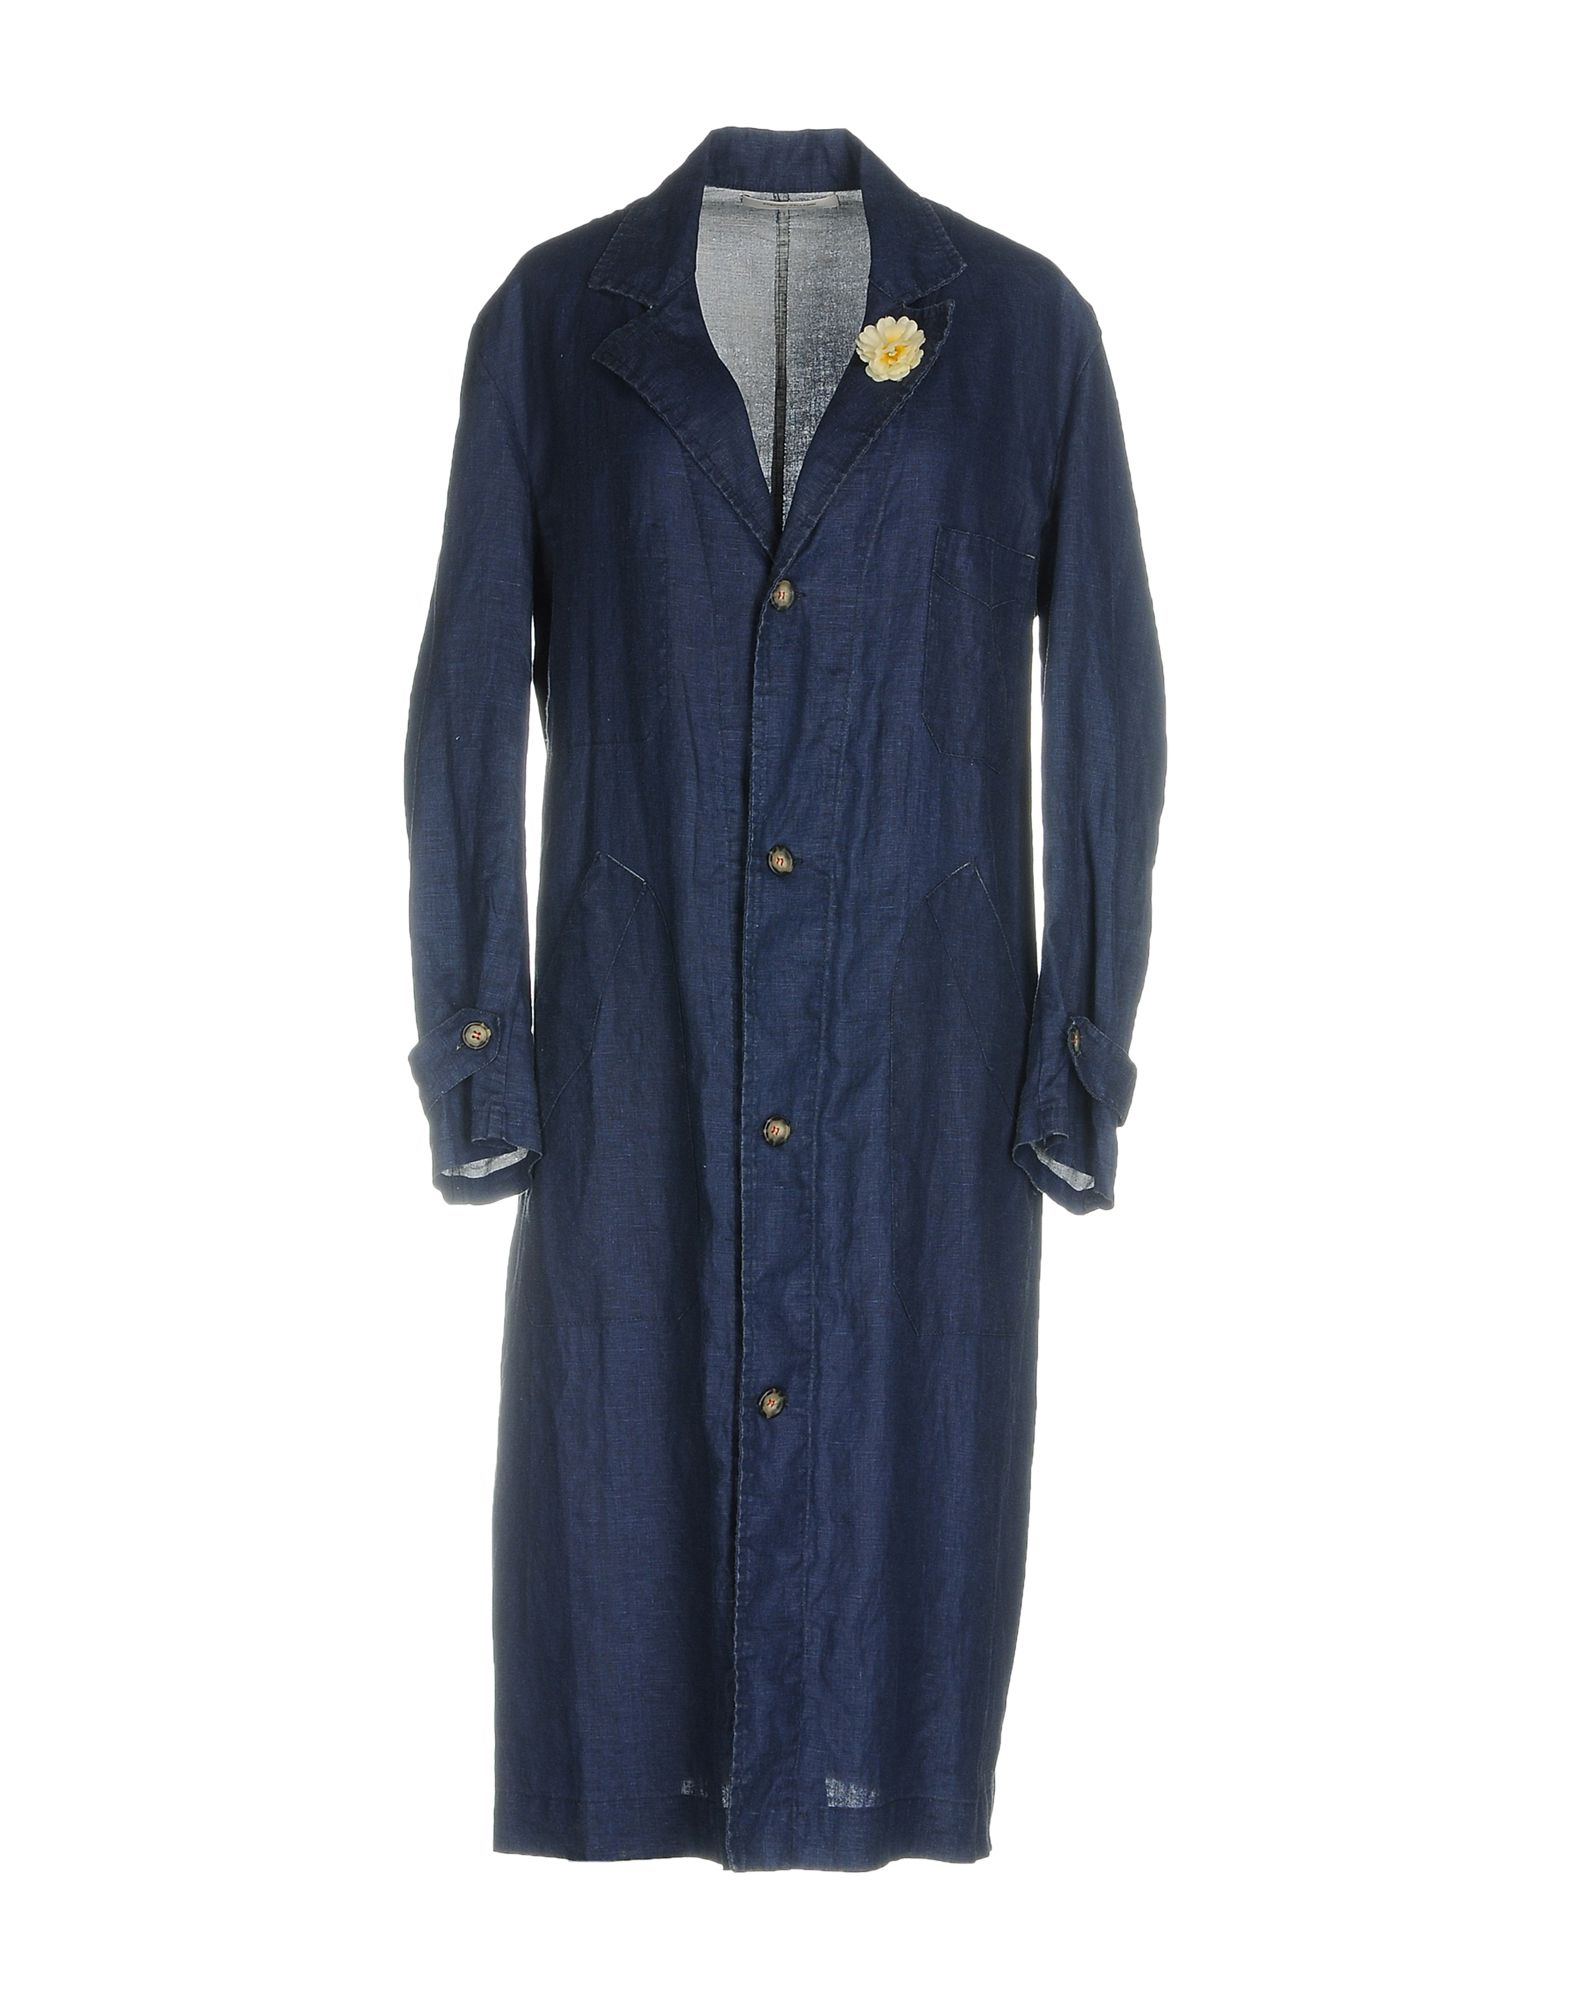 ERMANNO GALLAMINI Full-Length Jacket in Blue